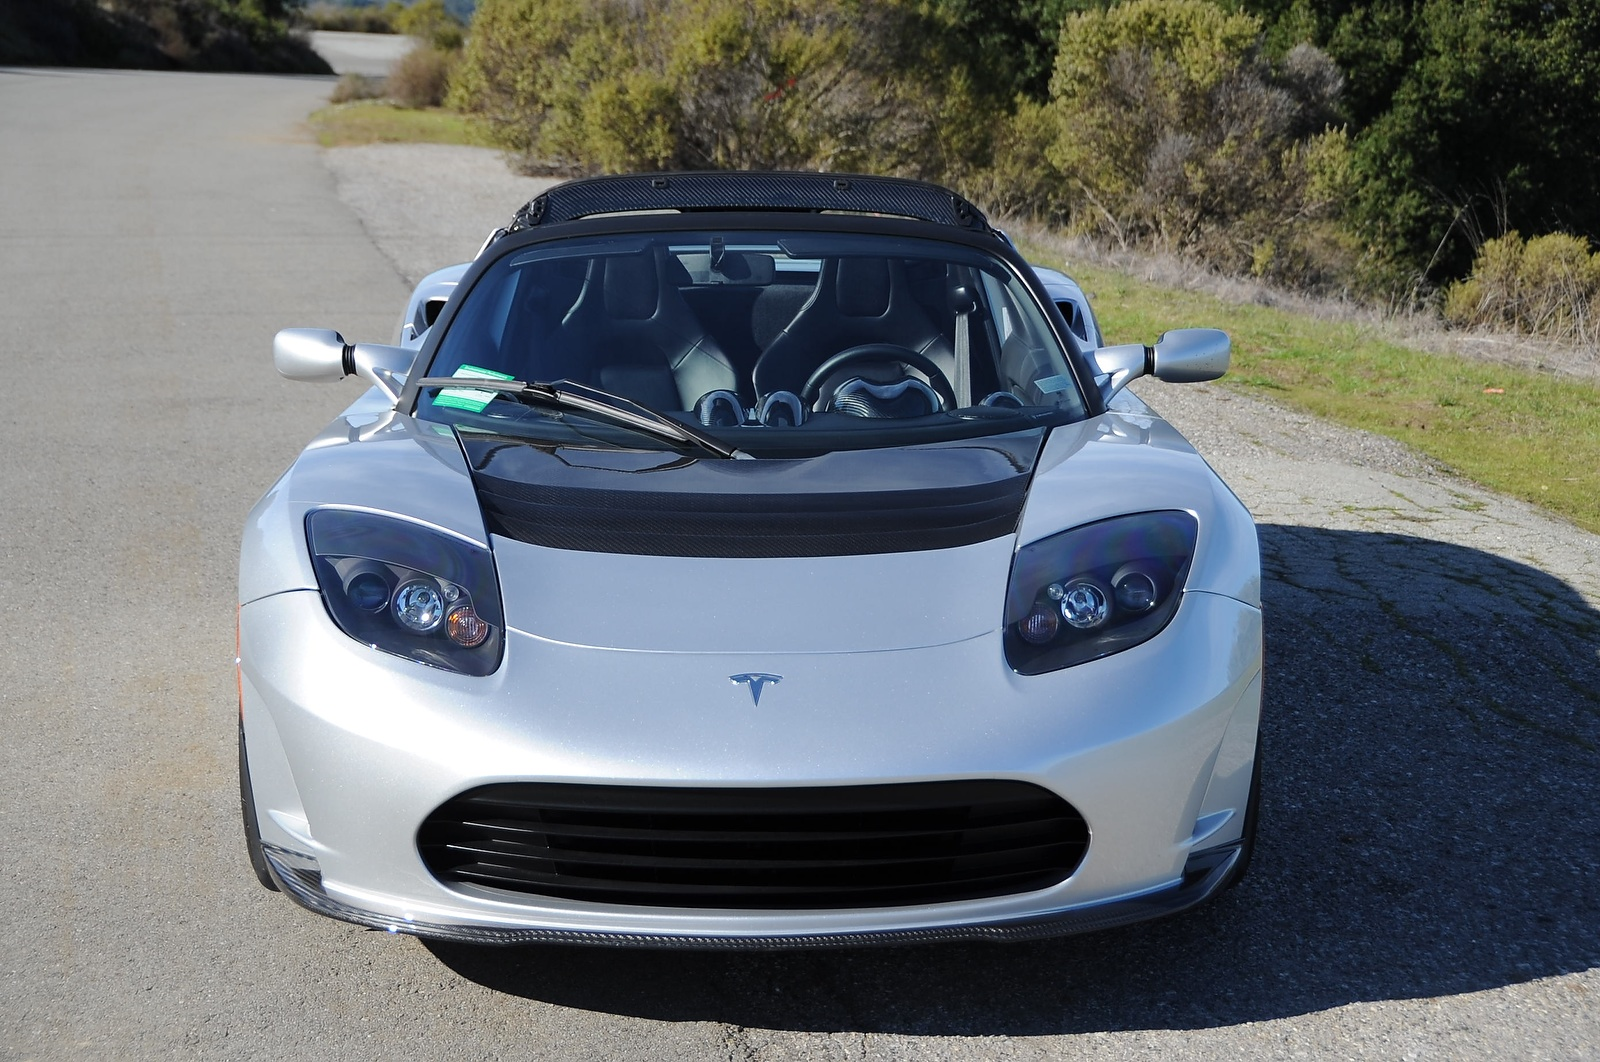 Bricking A Tesla Roadster Battery Today S Electric Car Meme